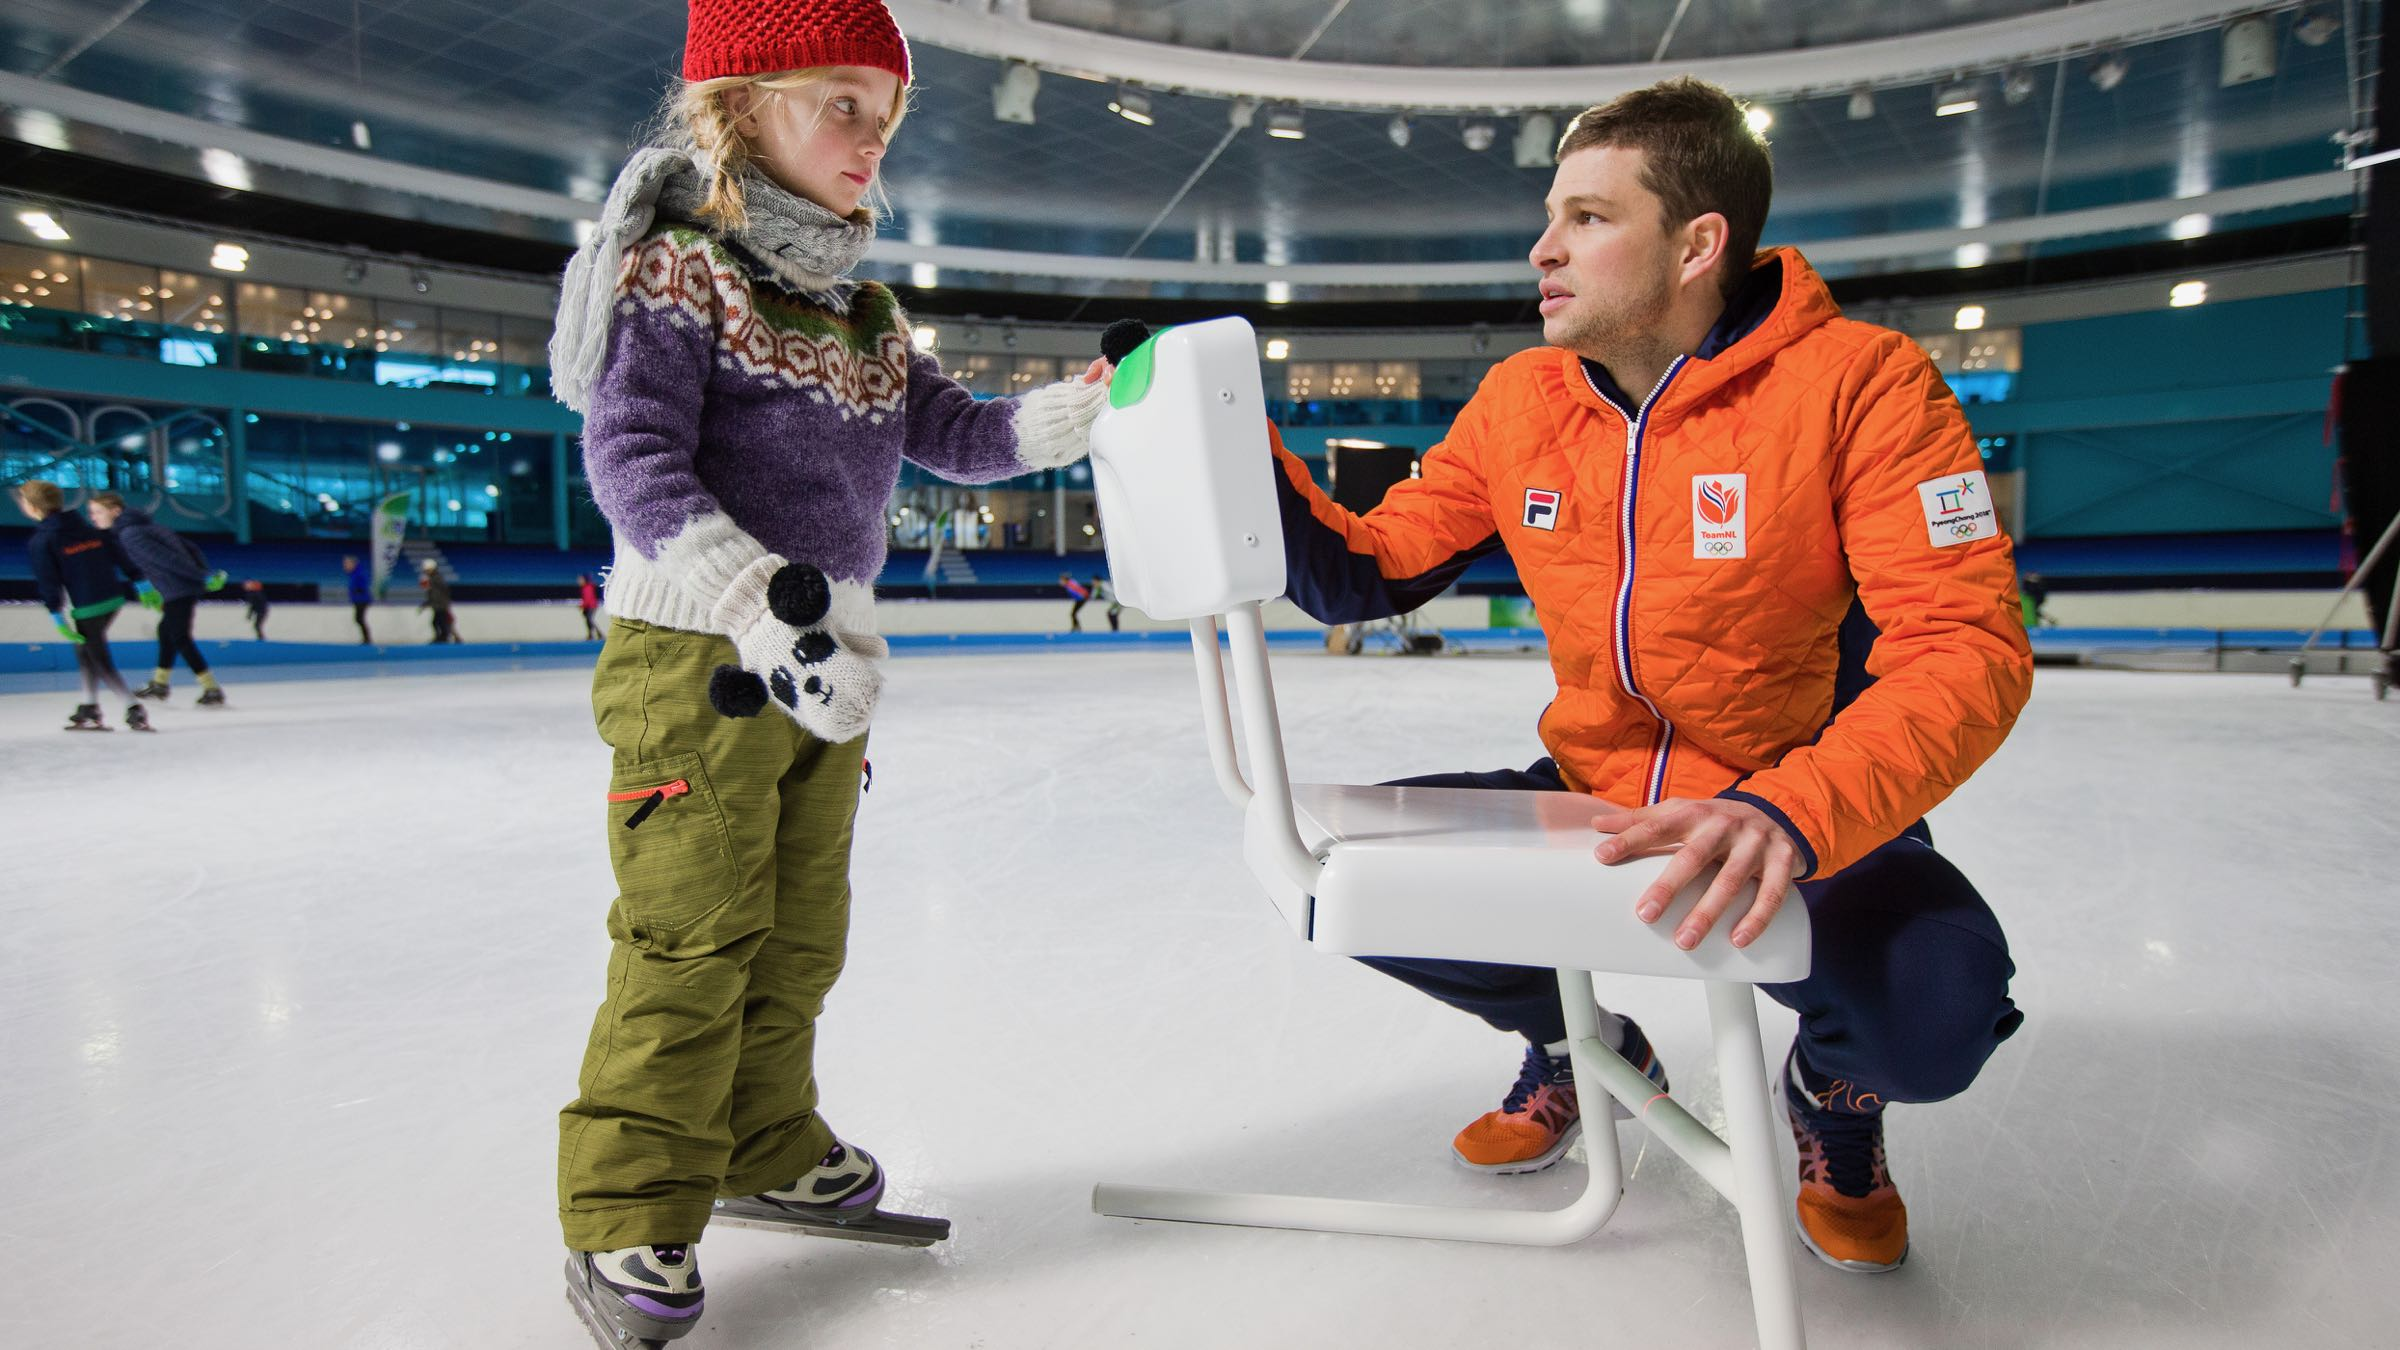 KPN SchaatsstoelA 'smart' chair designed to teach kids how to ice skate. - Client: KPNRead more —>